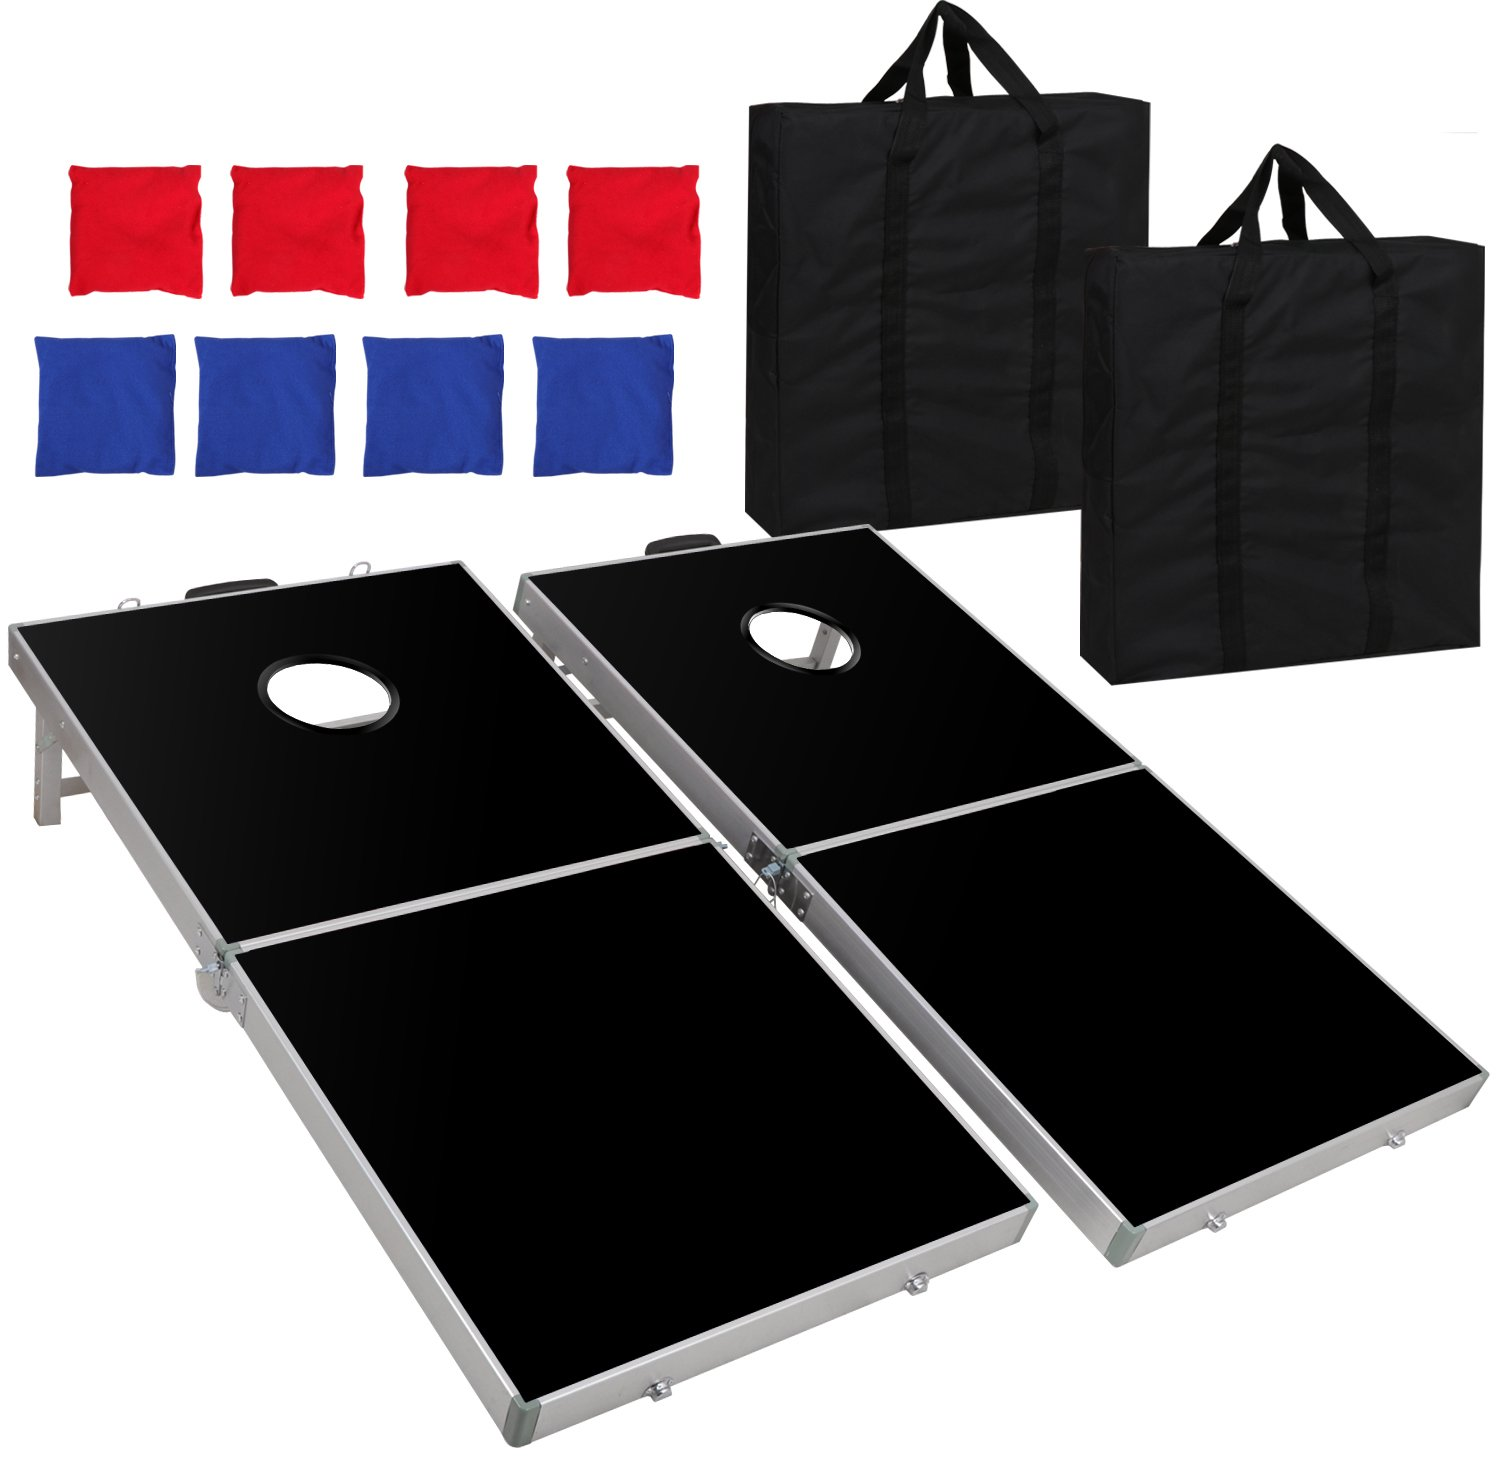 Nova Microdermabrasion Folding 4ft X 2ft Cornhole Bean Bag Toss Game Set Aluminum W/Carrying Case for Tailgate Party Backyard BBQ